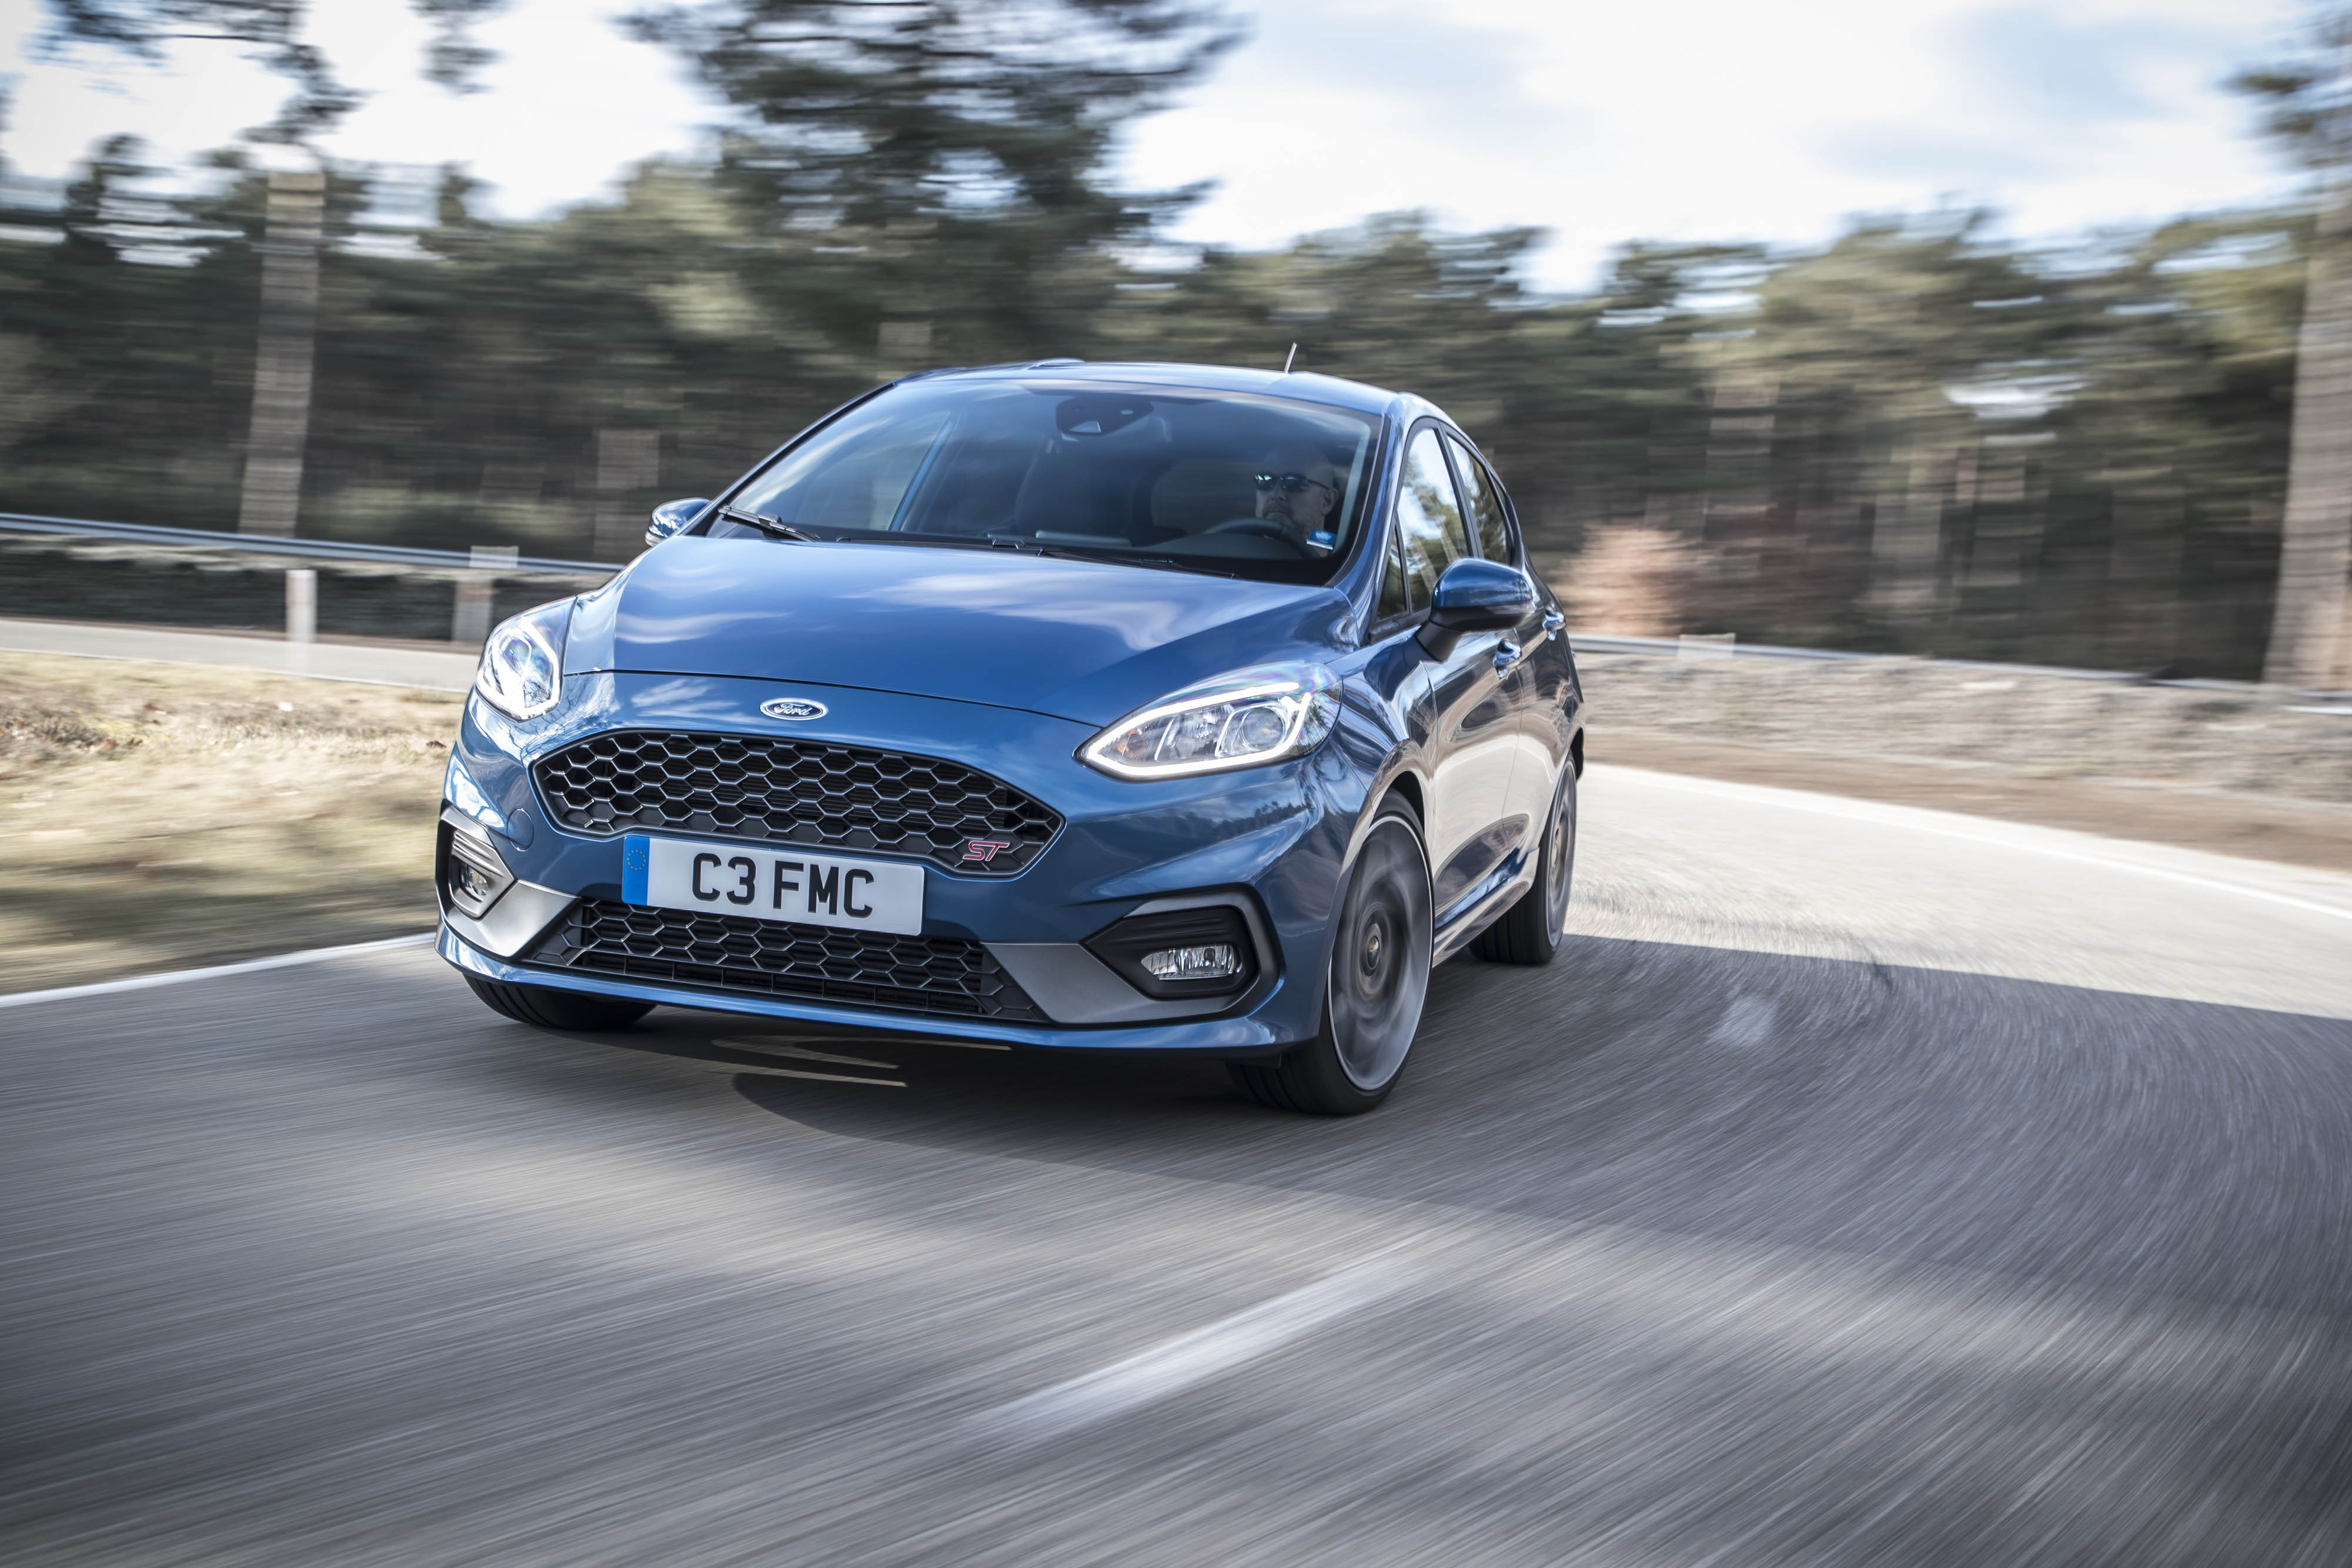 ford working on even hotter fiesta could be an rs autoevolution. Black Bedroom Furniture Sets. Home Design Ideas